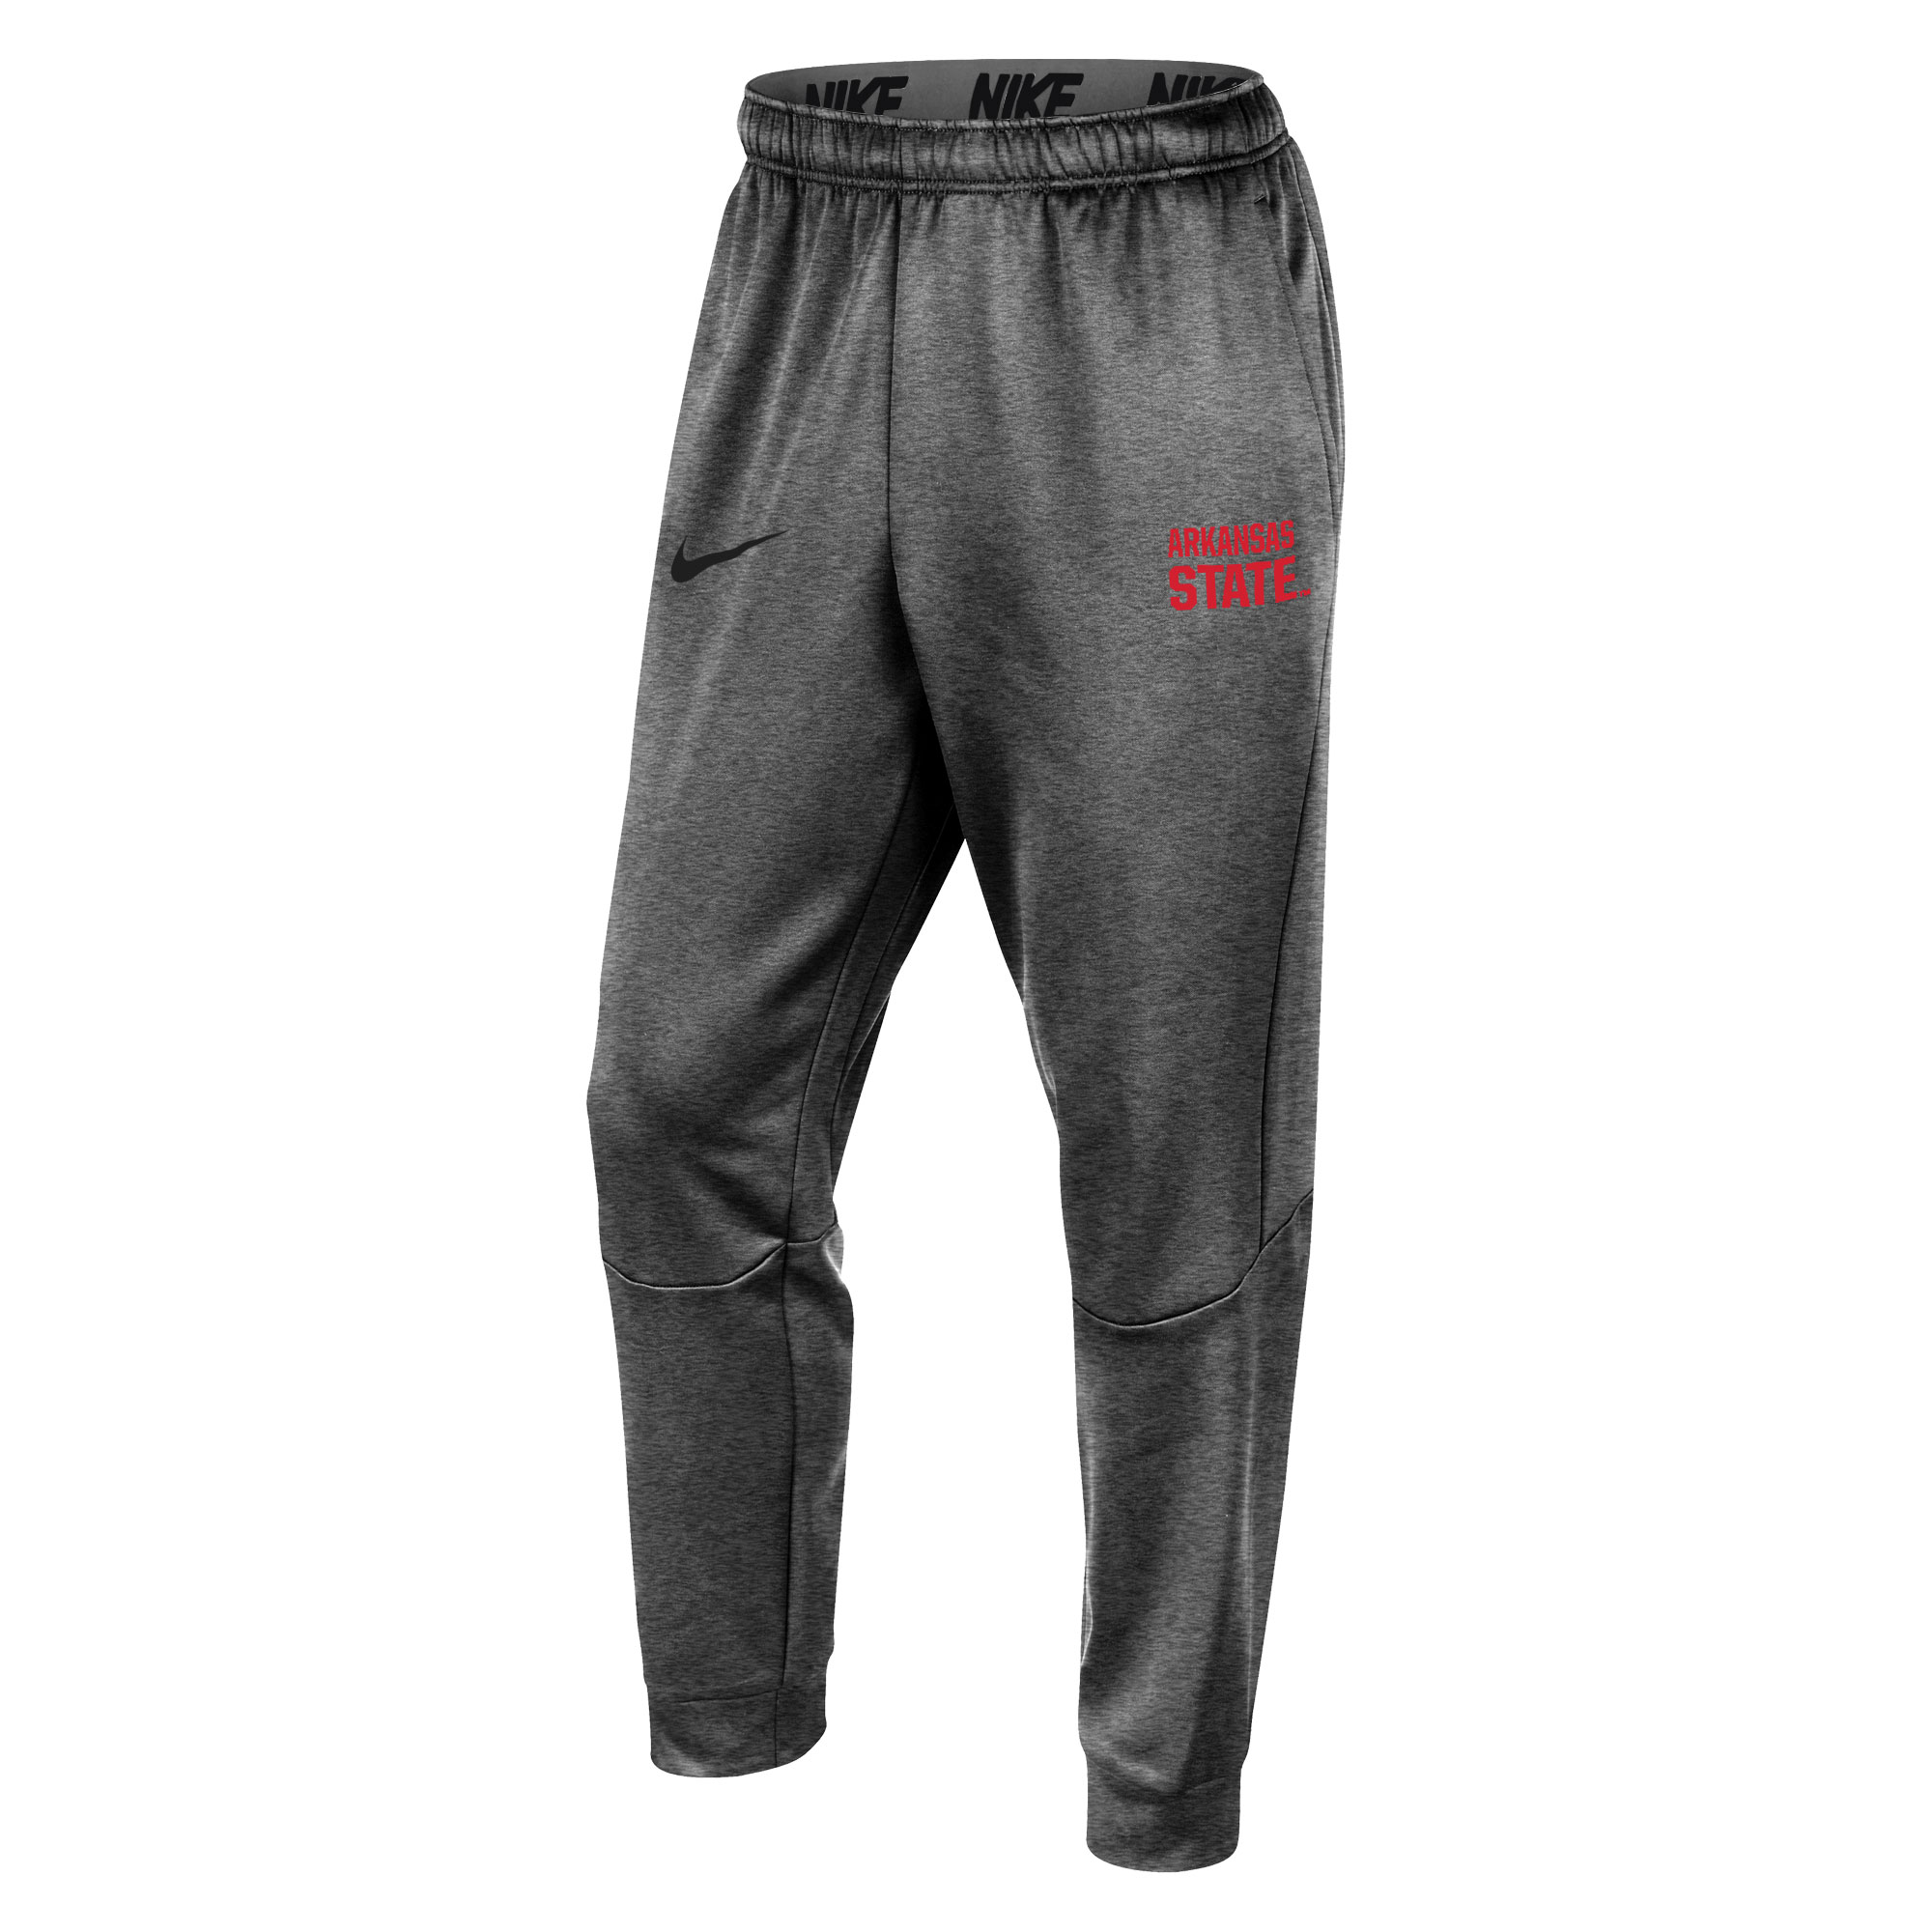 Arkansas State Therma Tapered Pants